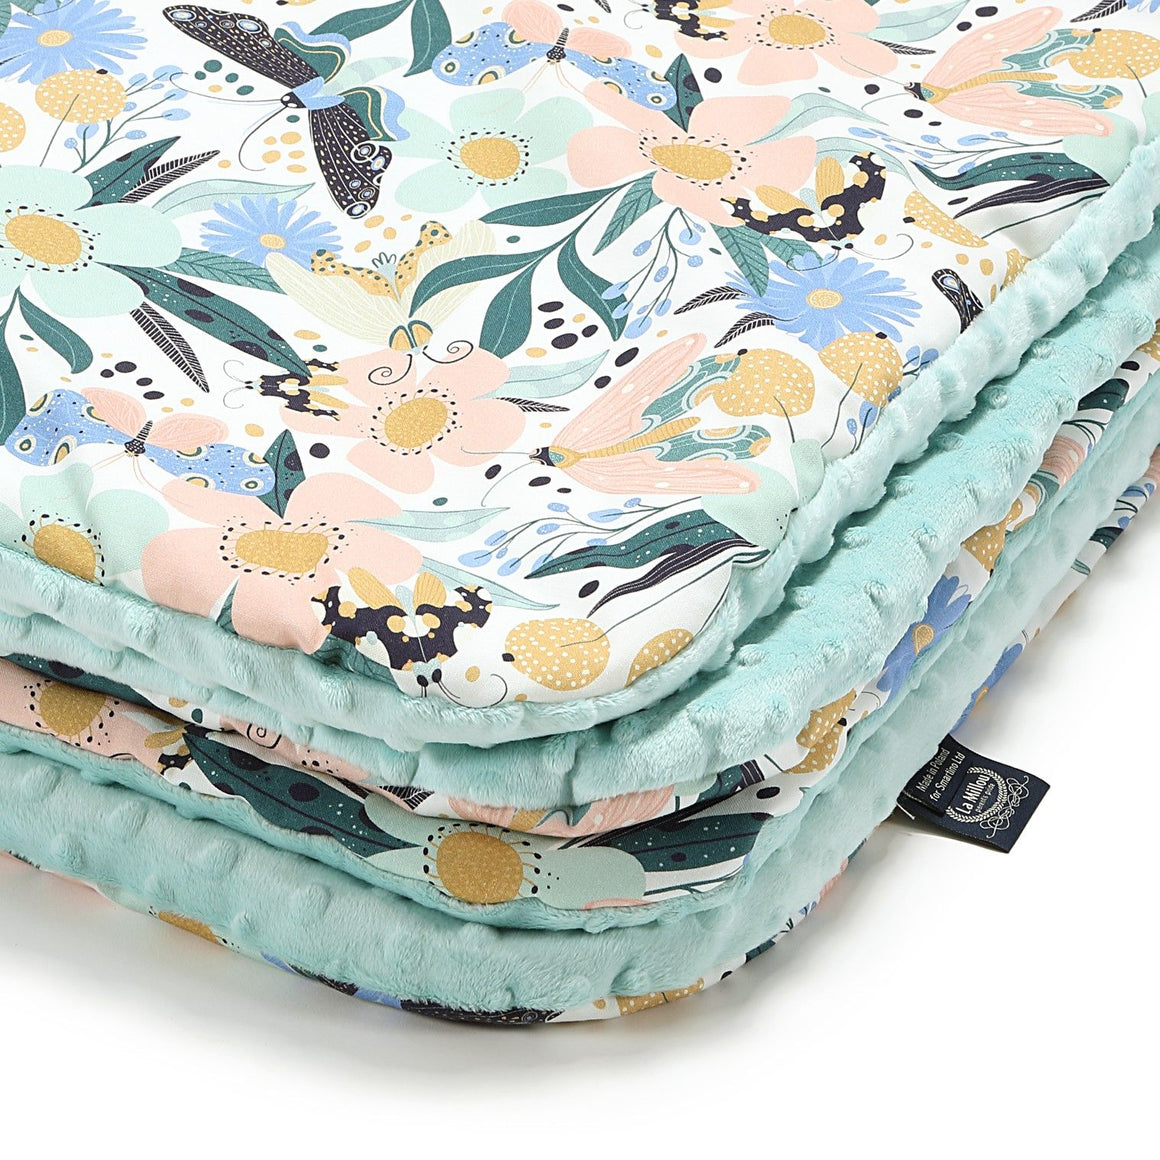 MEDIUM BLANKET peitto - Fairytale Land | Audrey Mint